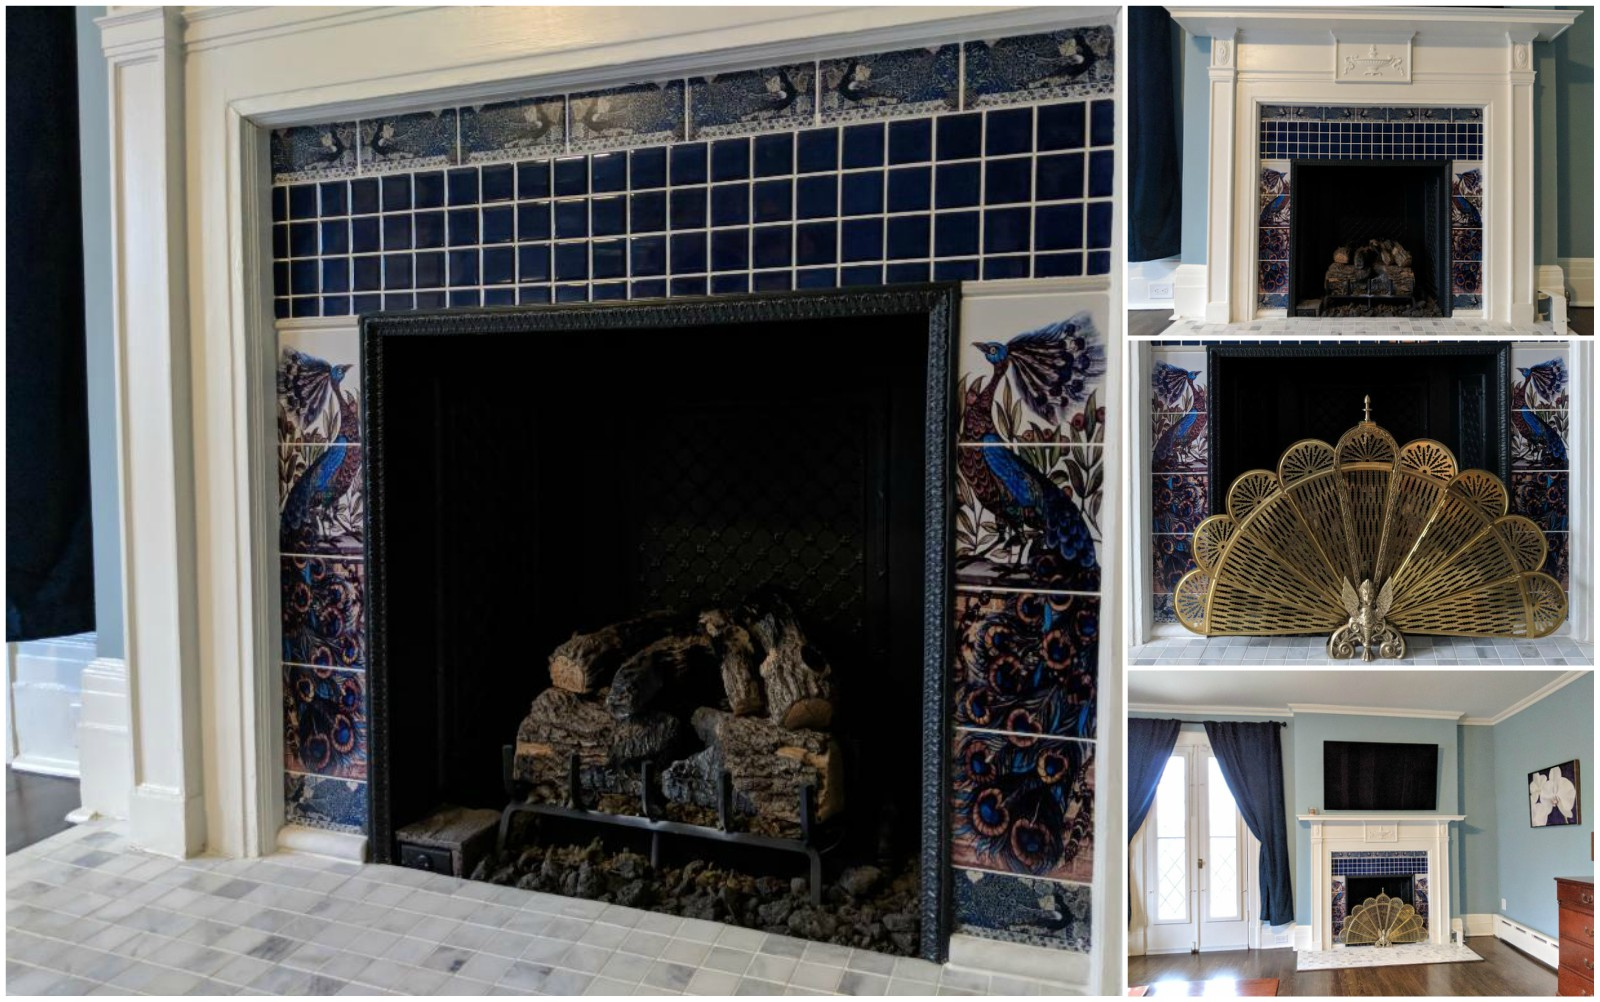 William De Morgan Peacock and Salamander paneled fireplace with peacock border tiles, WilliamMorrisTile.com